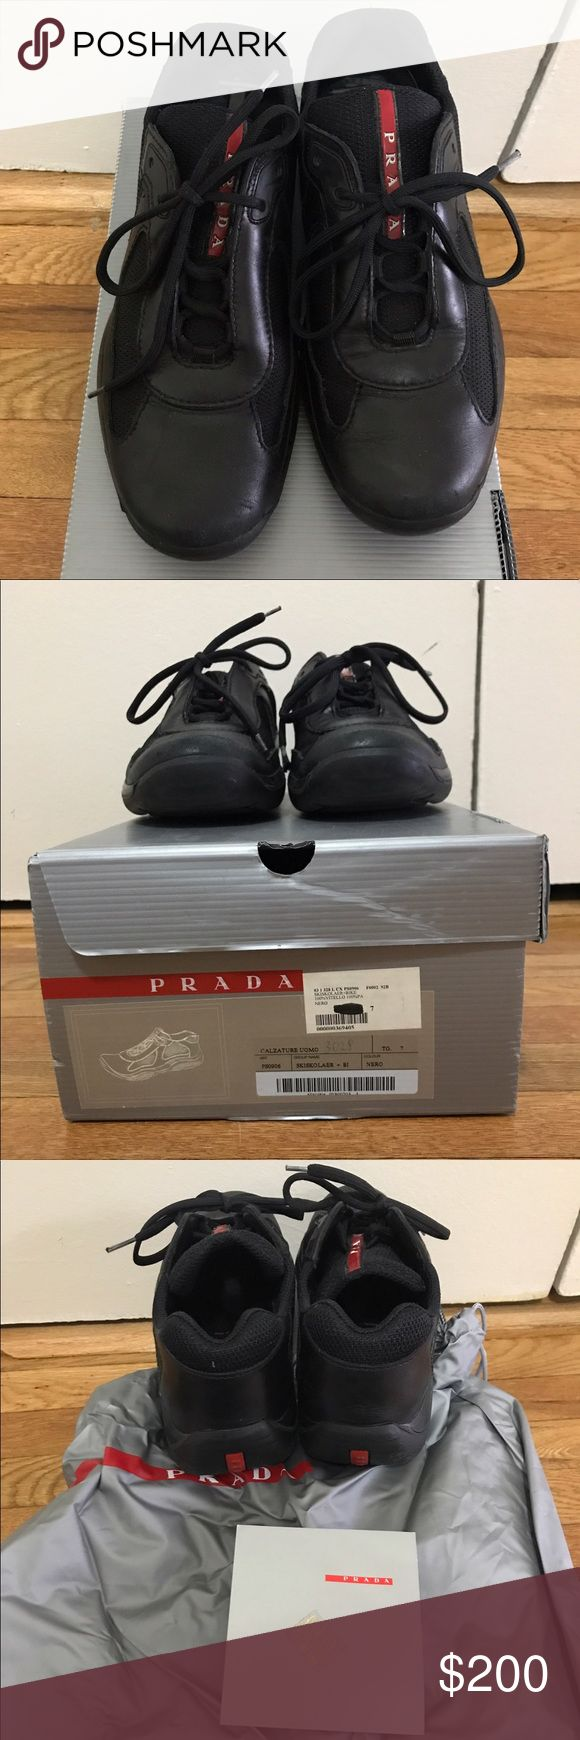 Men's Authentic Prada Sneakers sz 7 Men's authentic Prada sneakers size 7 with box and bag. Brand new sells for $650 and worn a handful of times. Prada Shoes Sneakers